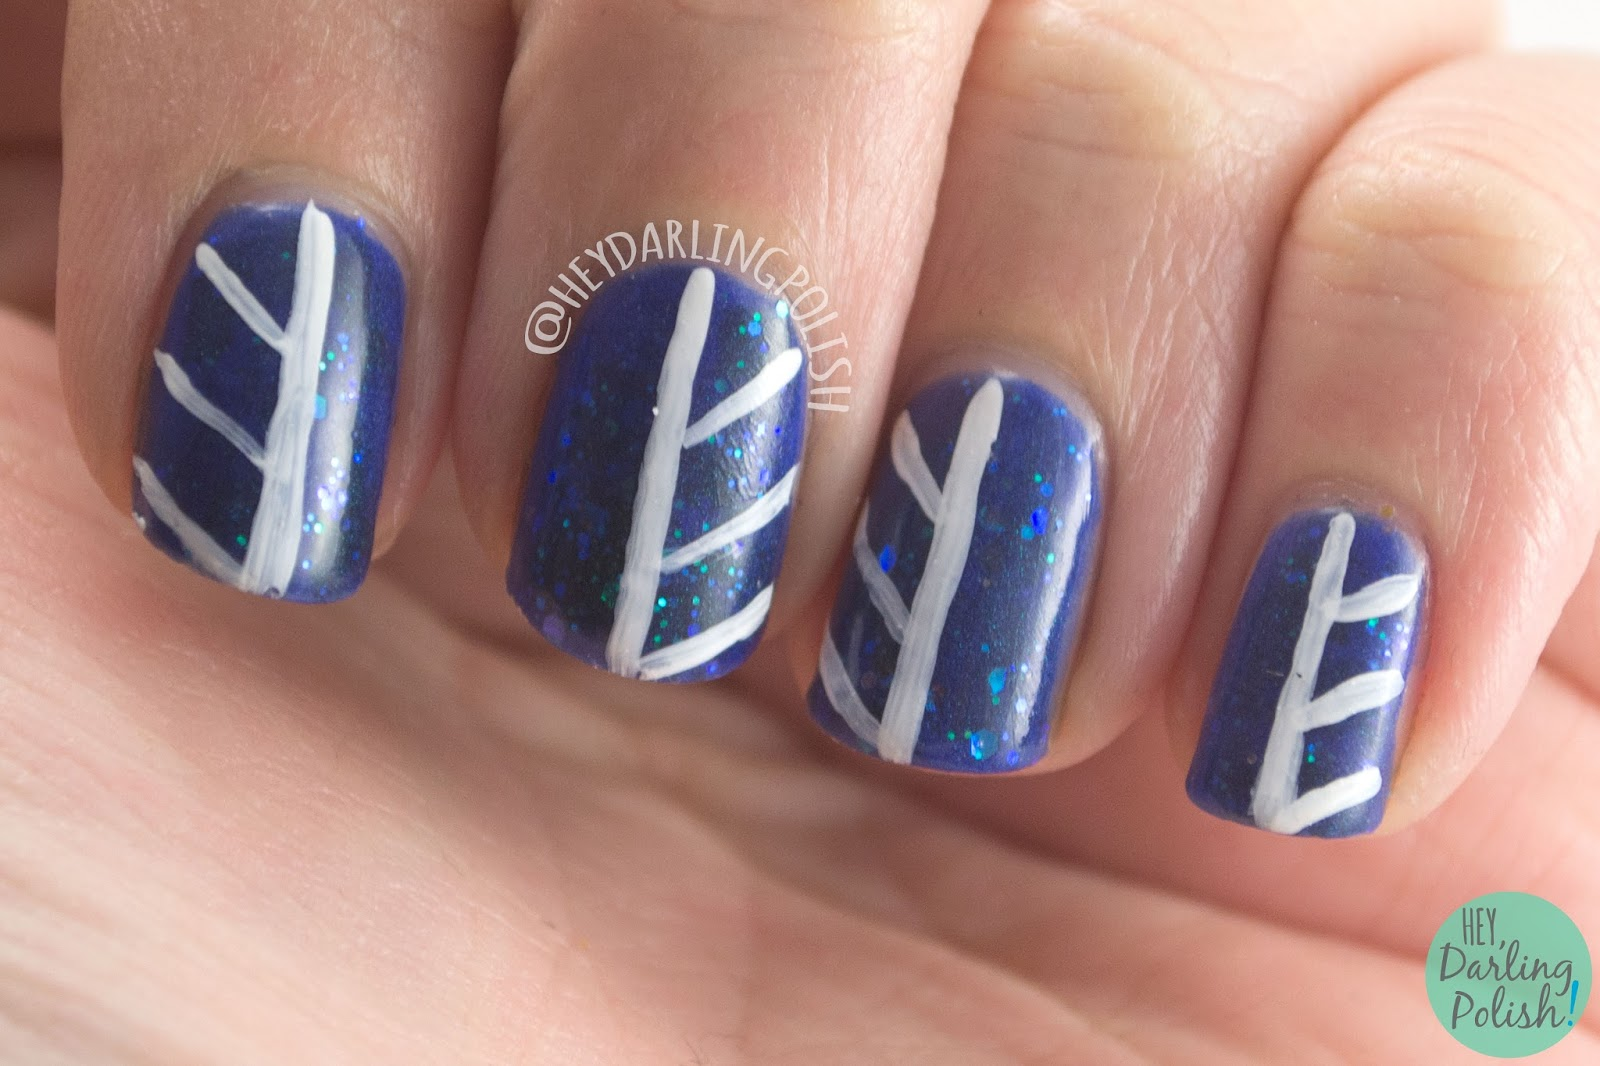 nails, nail art, nail polish, indie polish, blue, spell polish, hey darling polish, lines, stripes, glitter,